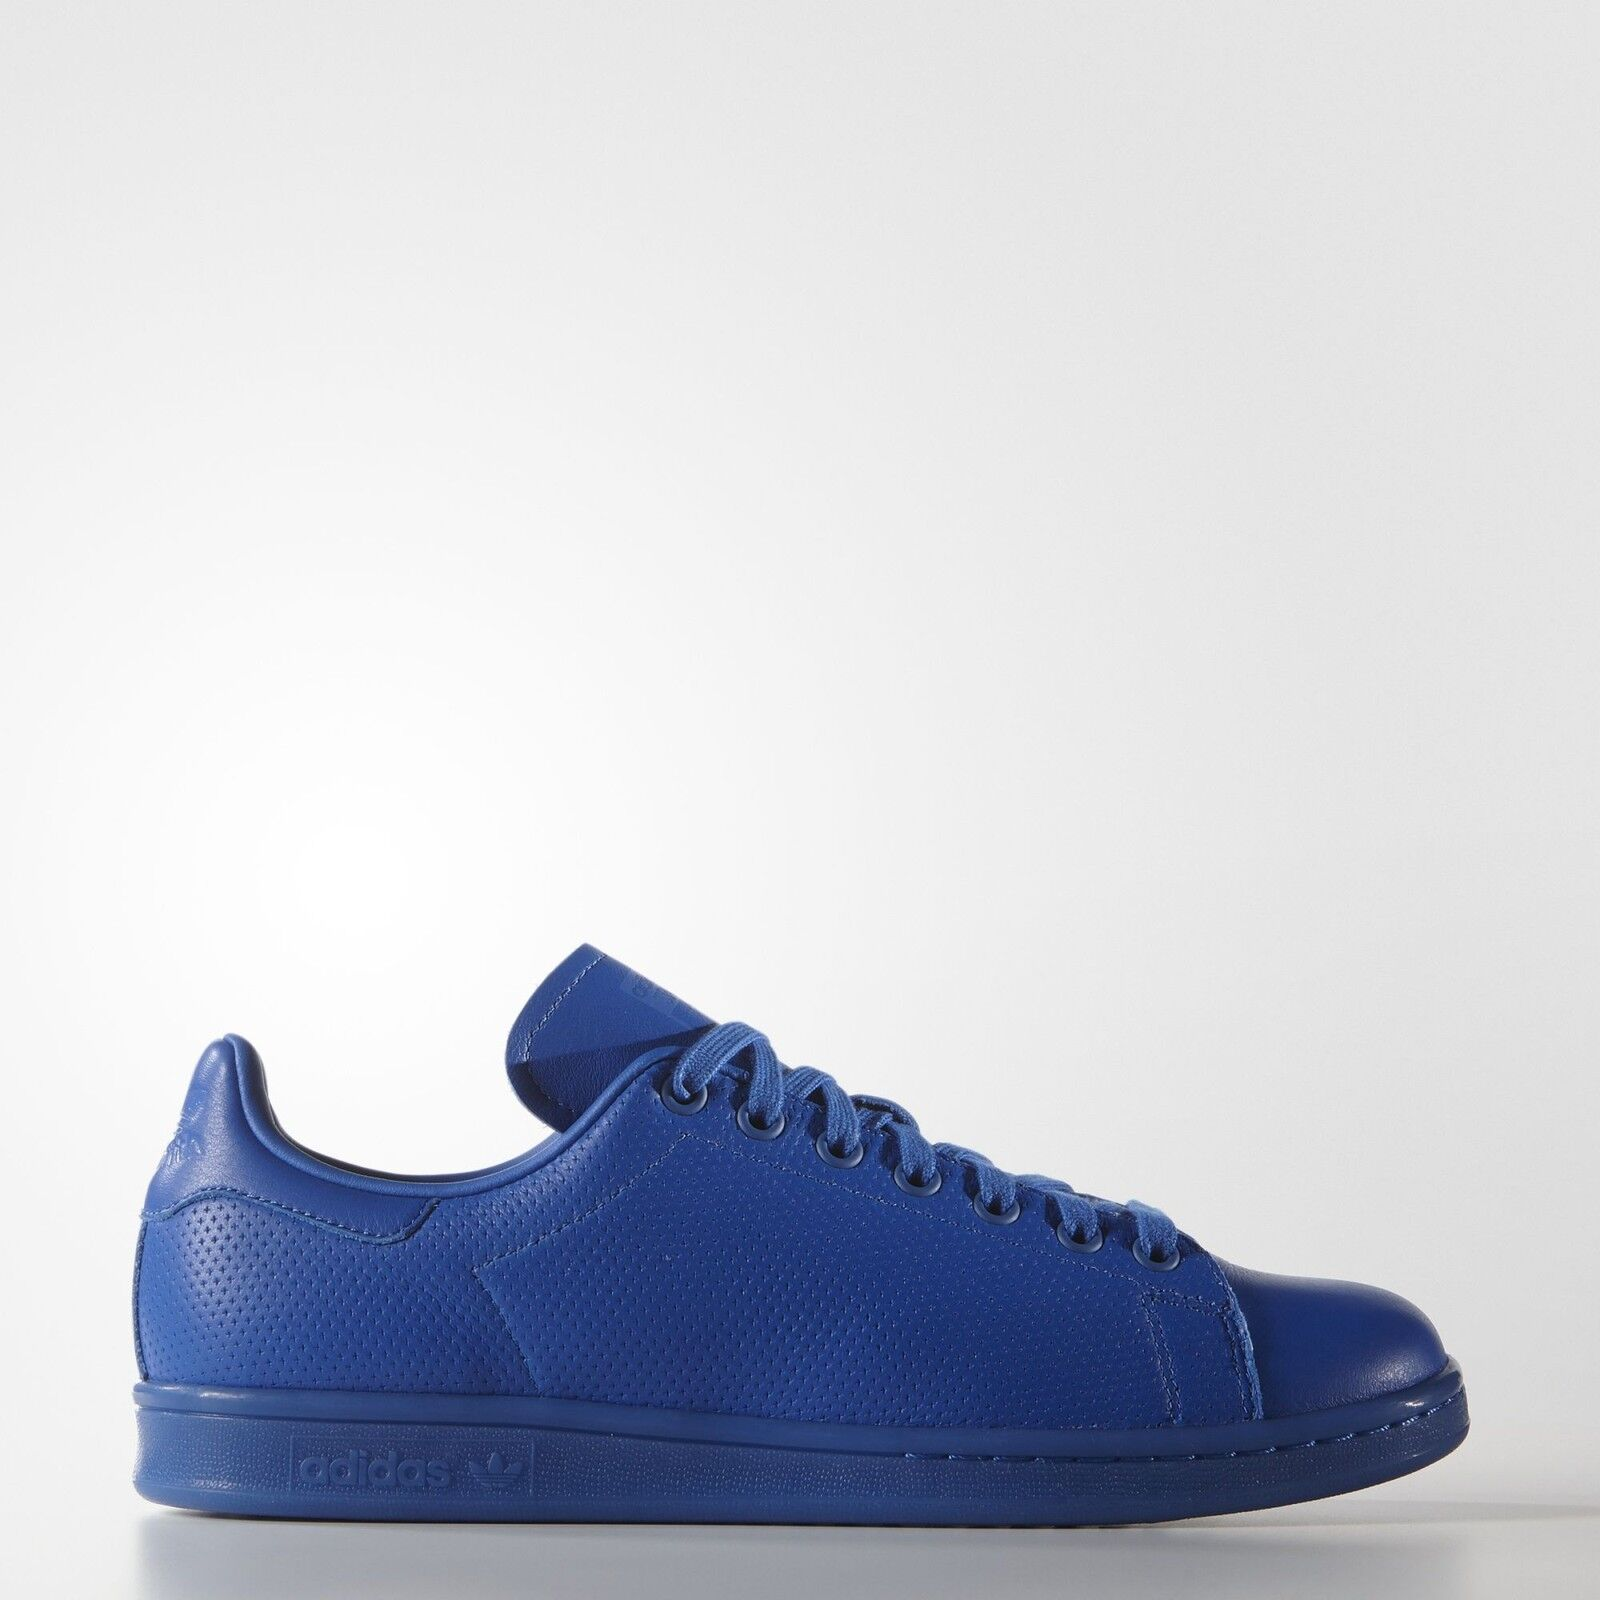 8a1b49ca3 ... promo code for adidas originals mens stan smith perforated leather blue  athletic sneakers adidas tubular runner